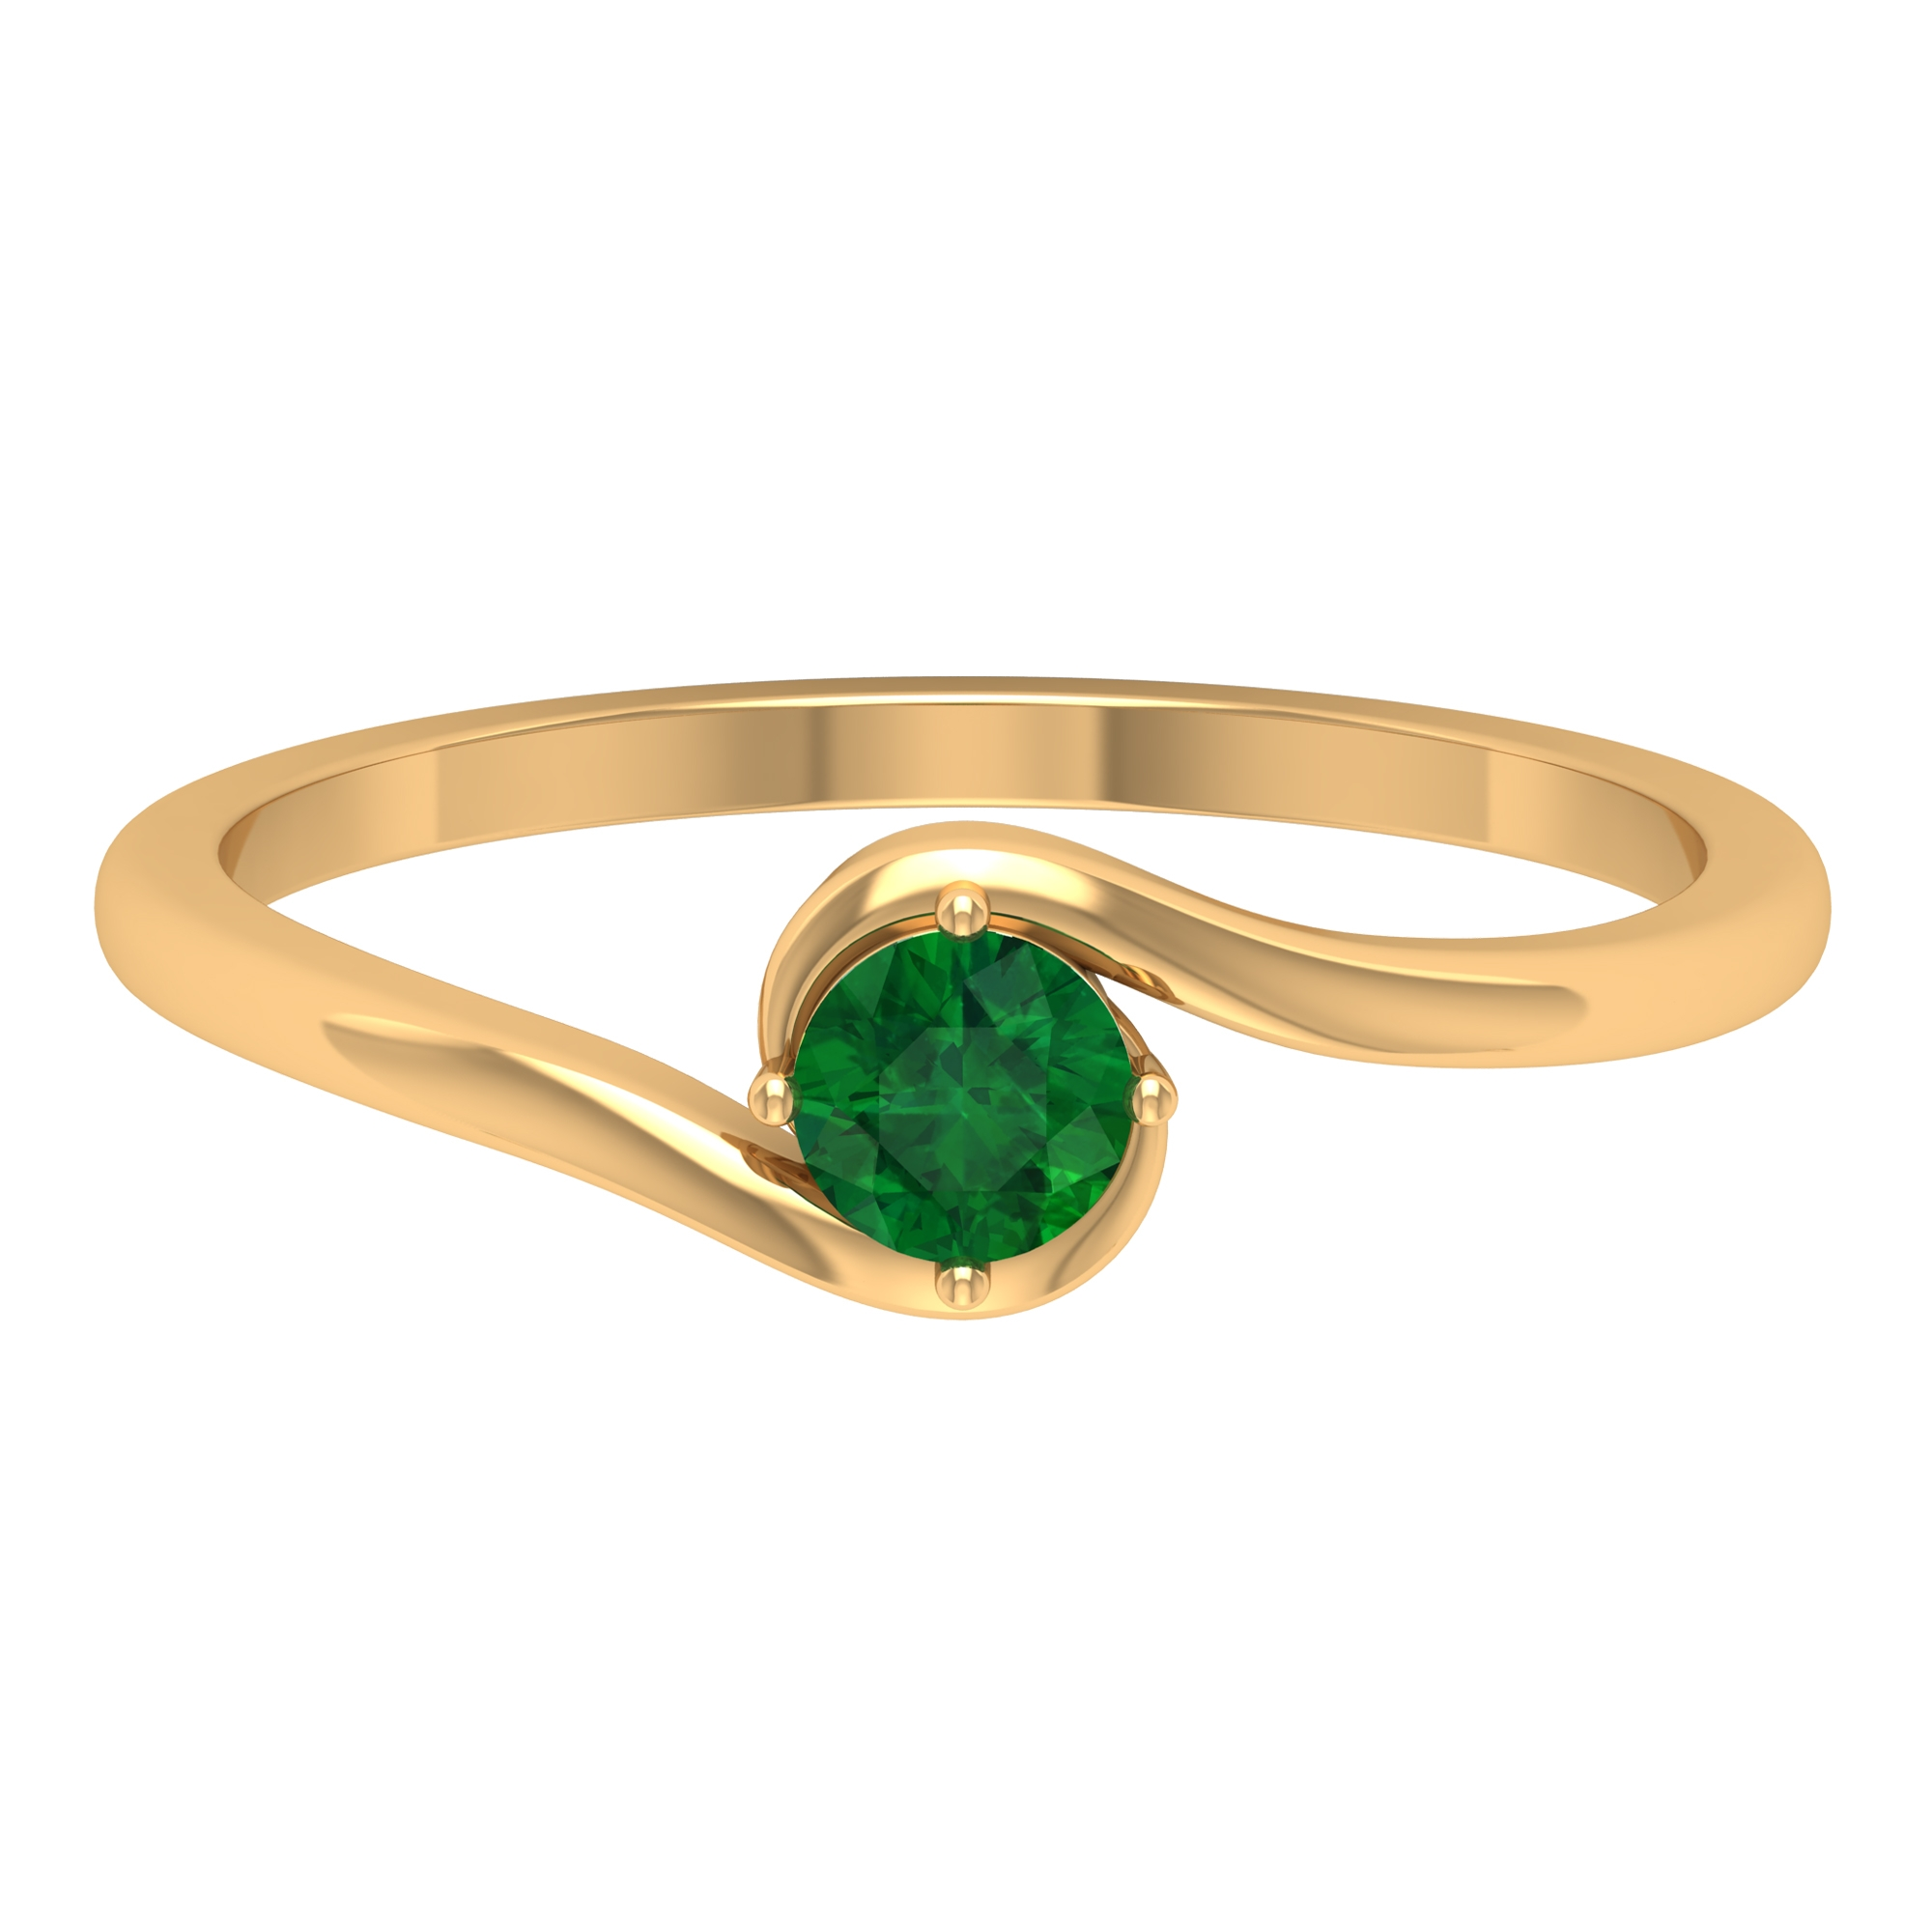 May Birthstone 4 MM Emerald Solitaire Ring in 4 Prong Diagonal Setting with Bypass Shank